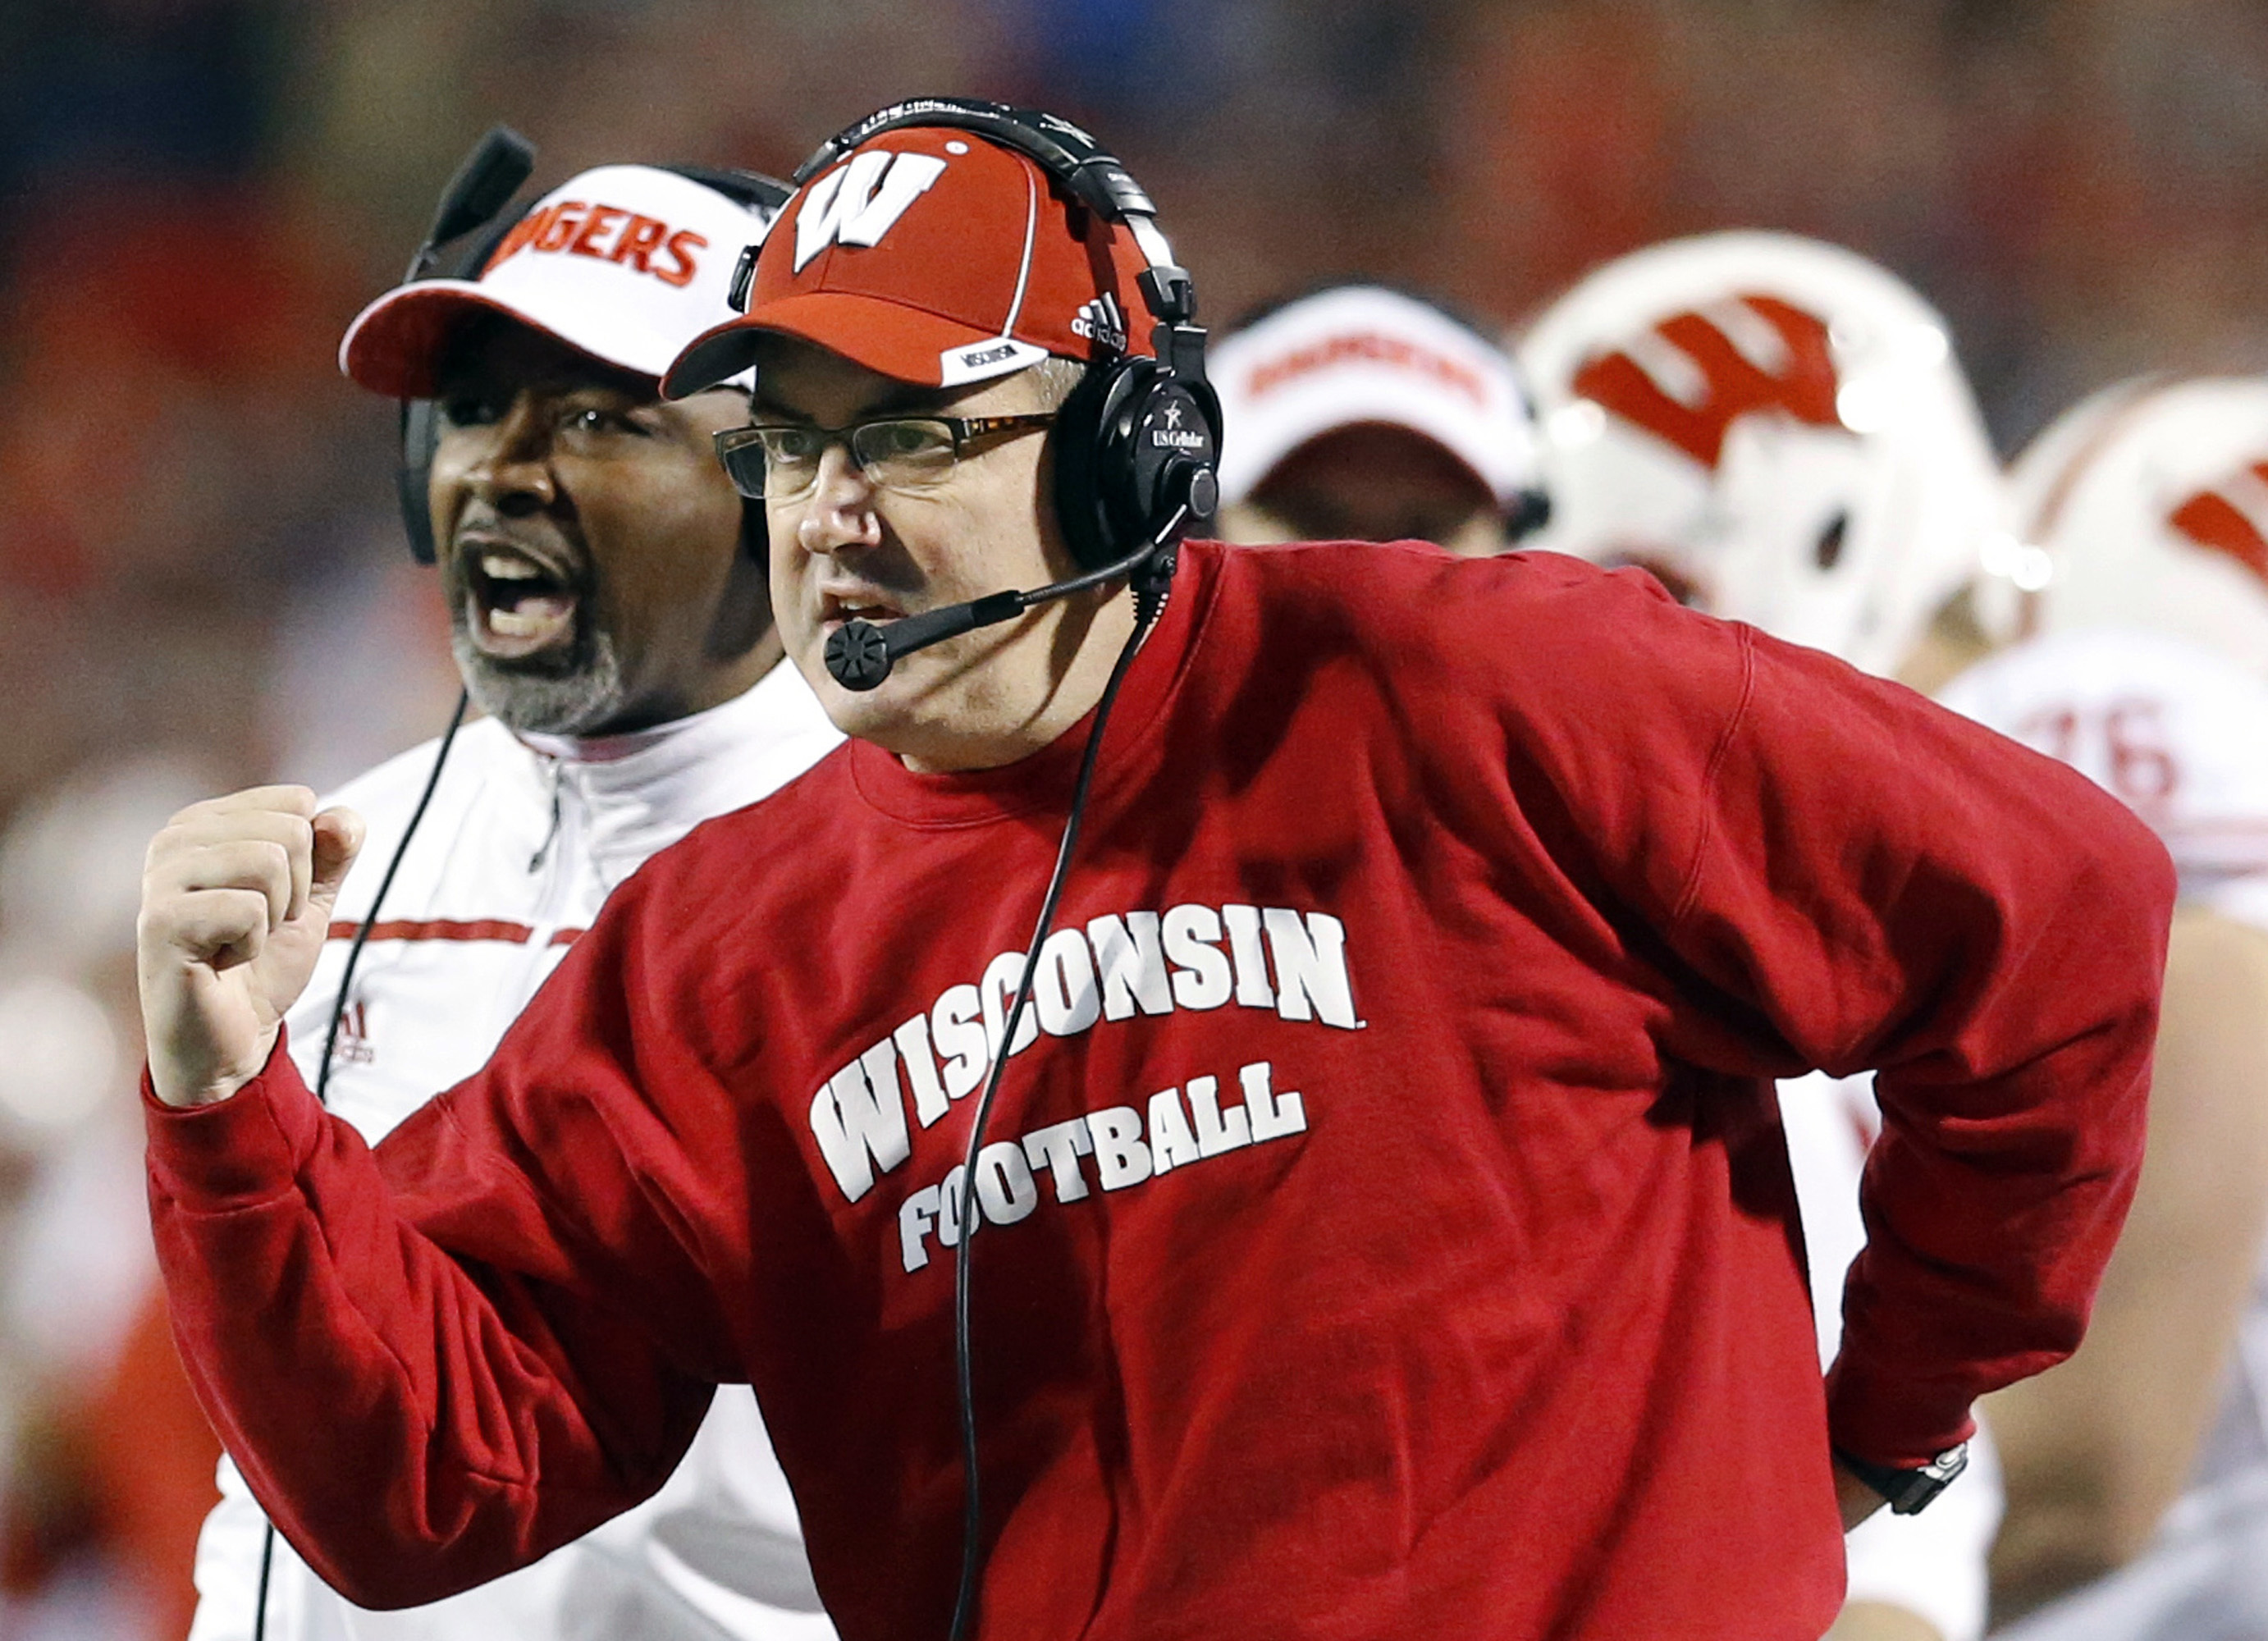 FILE - In this Nov. 7, 2015, file photo, Wisconsin head coach Paul Chryst, foreground, reacts after running back Alec Ingold scored a touchdown in the second half of an NCAA college football game against Maryland. Tenth-ranked Wisconsin plays its home ope